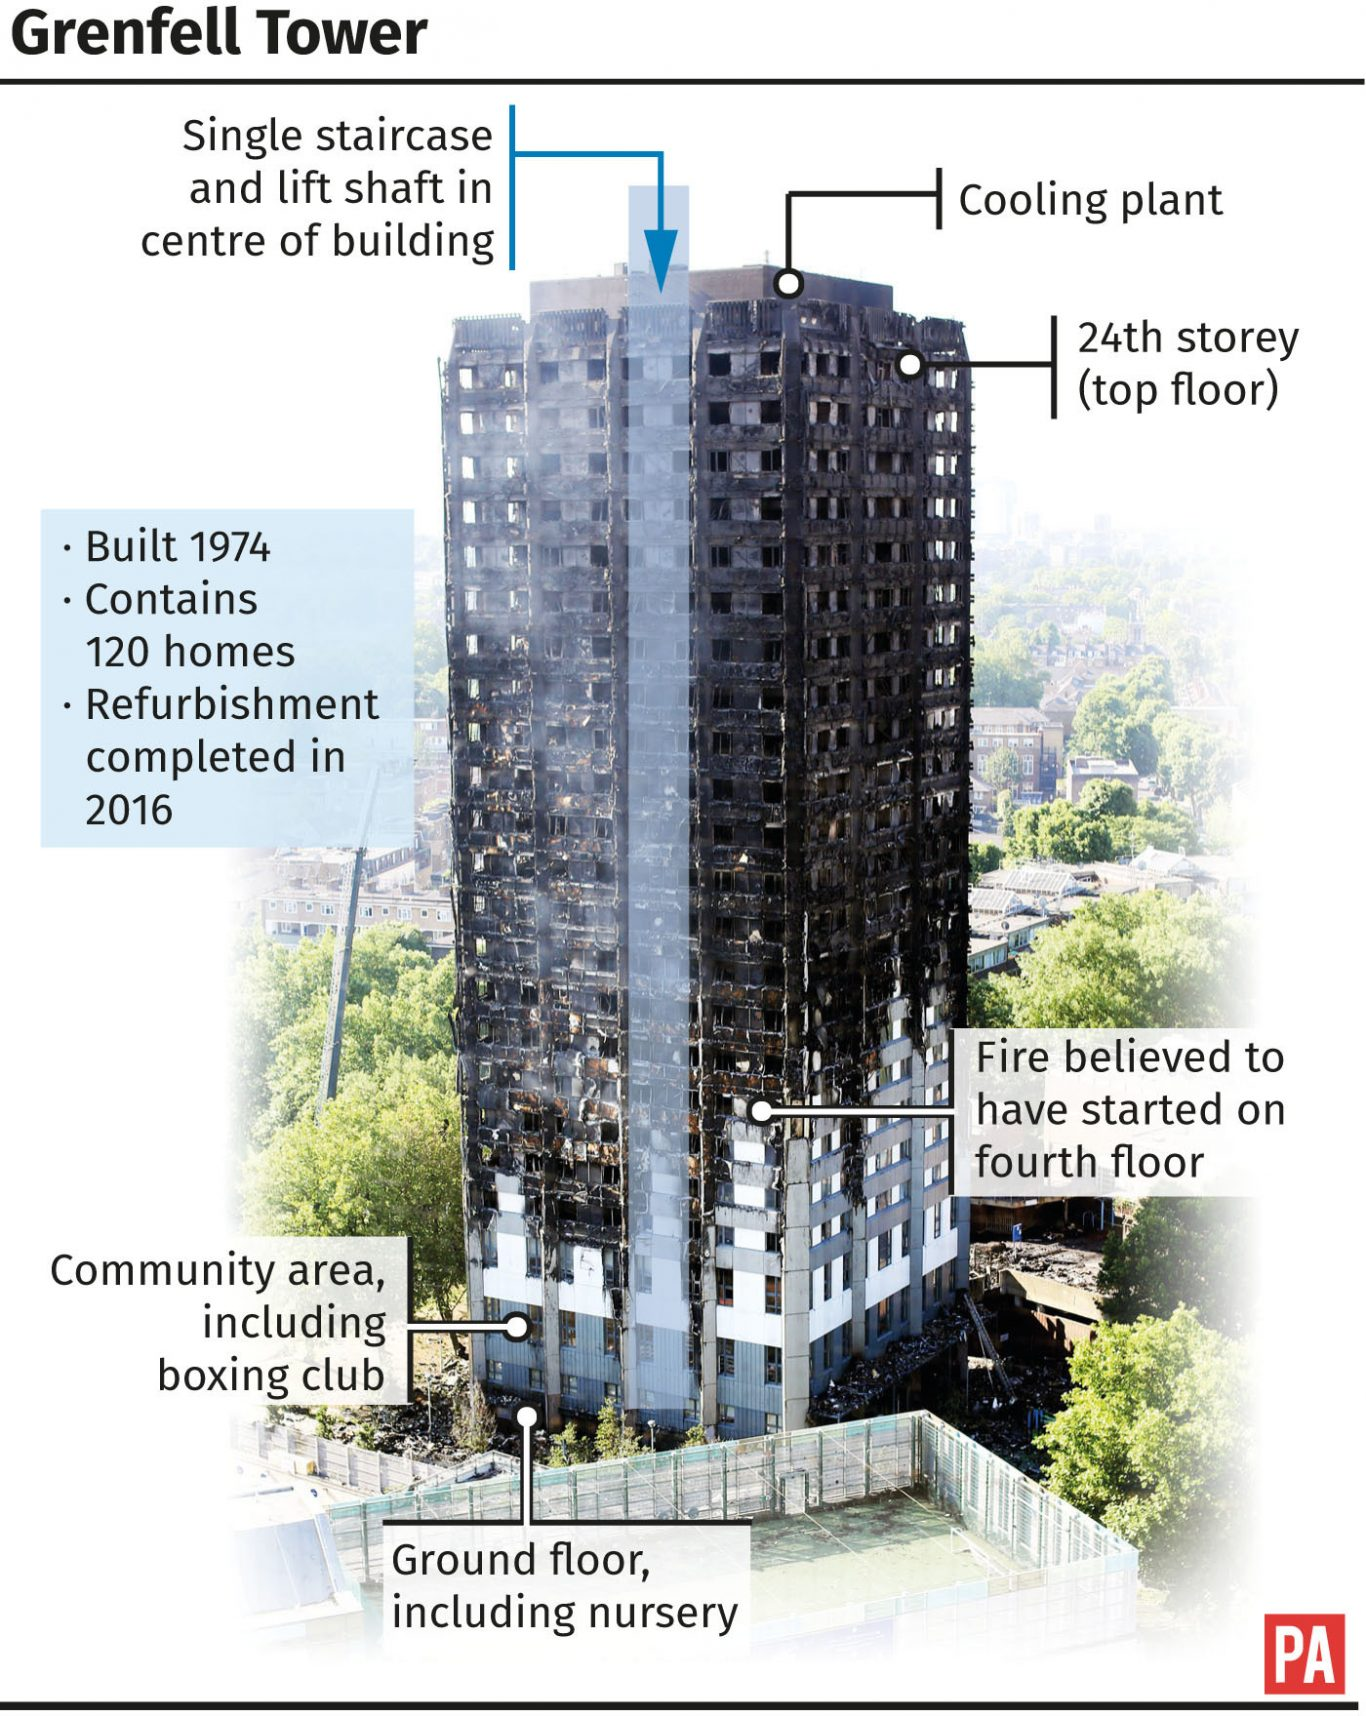 79 people believed dead in London tower block fire